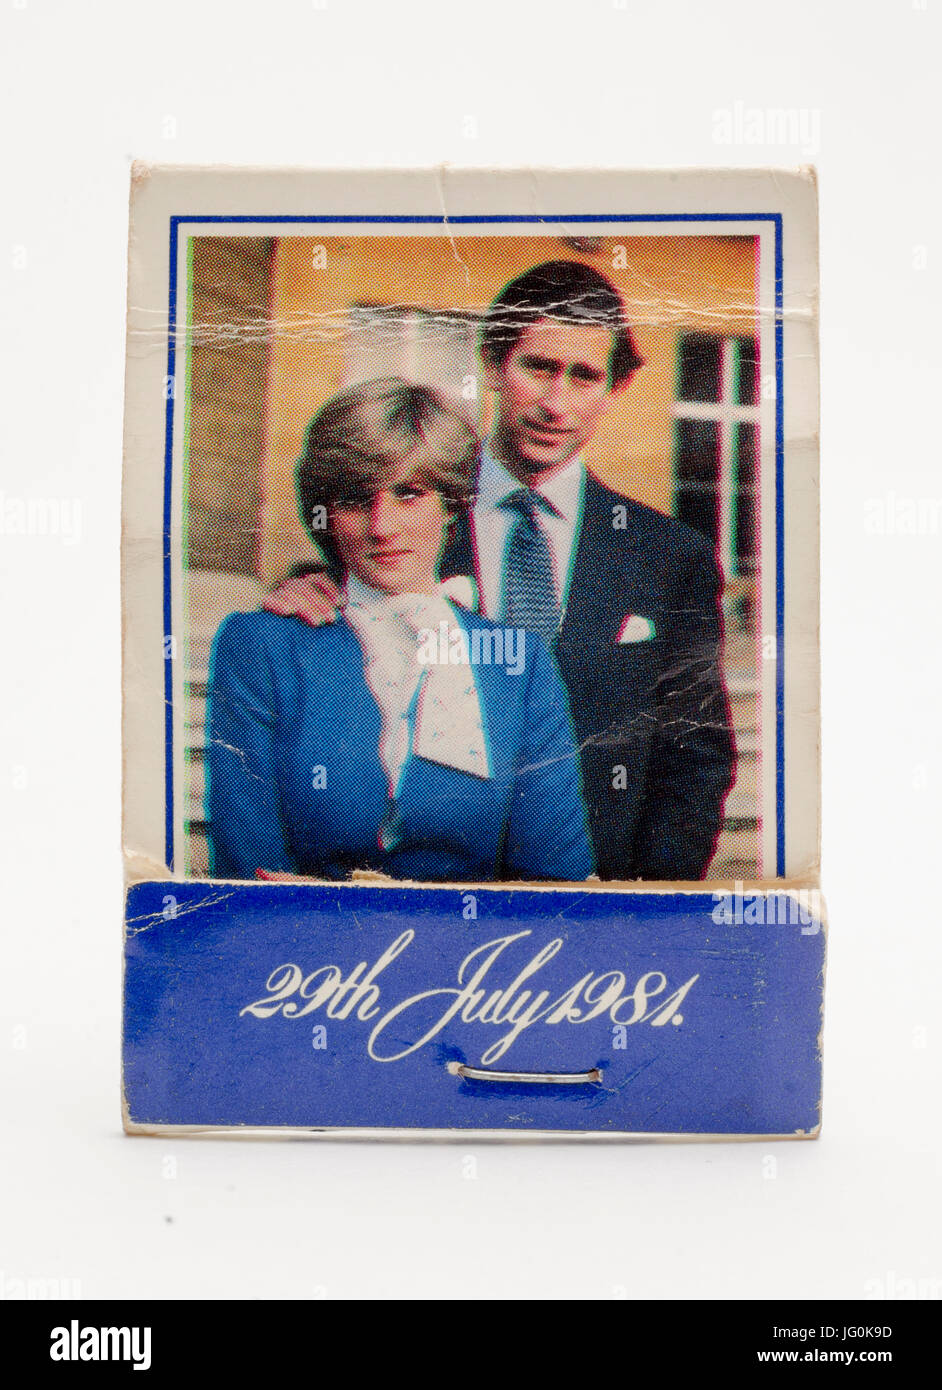 Commemorative Book of Matches celebrating the Royal Wedding of Lady Diana Spencer and HRH Prince Charles on the Stock Photo